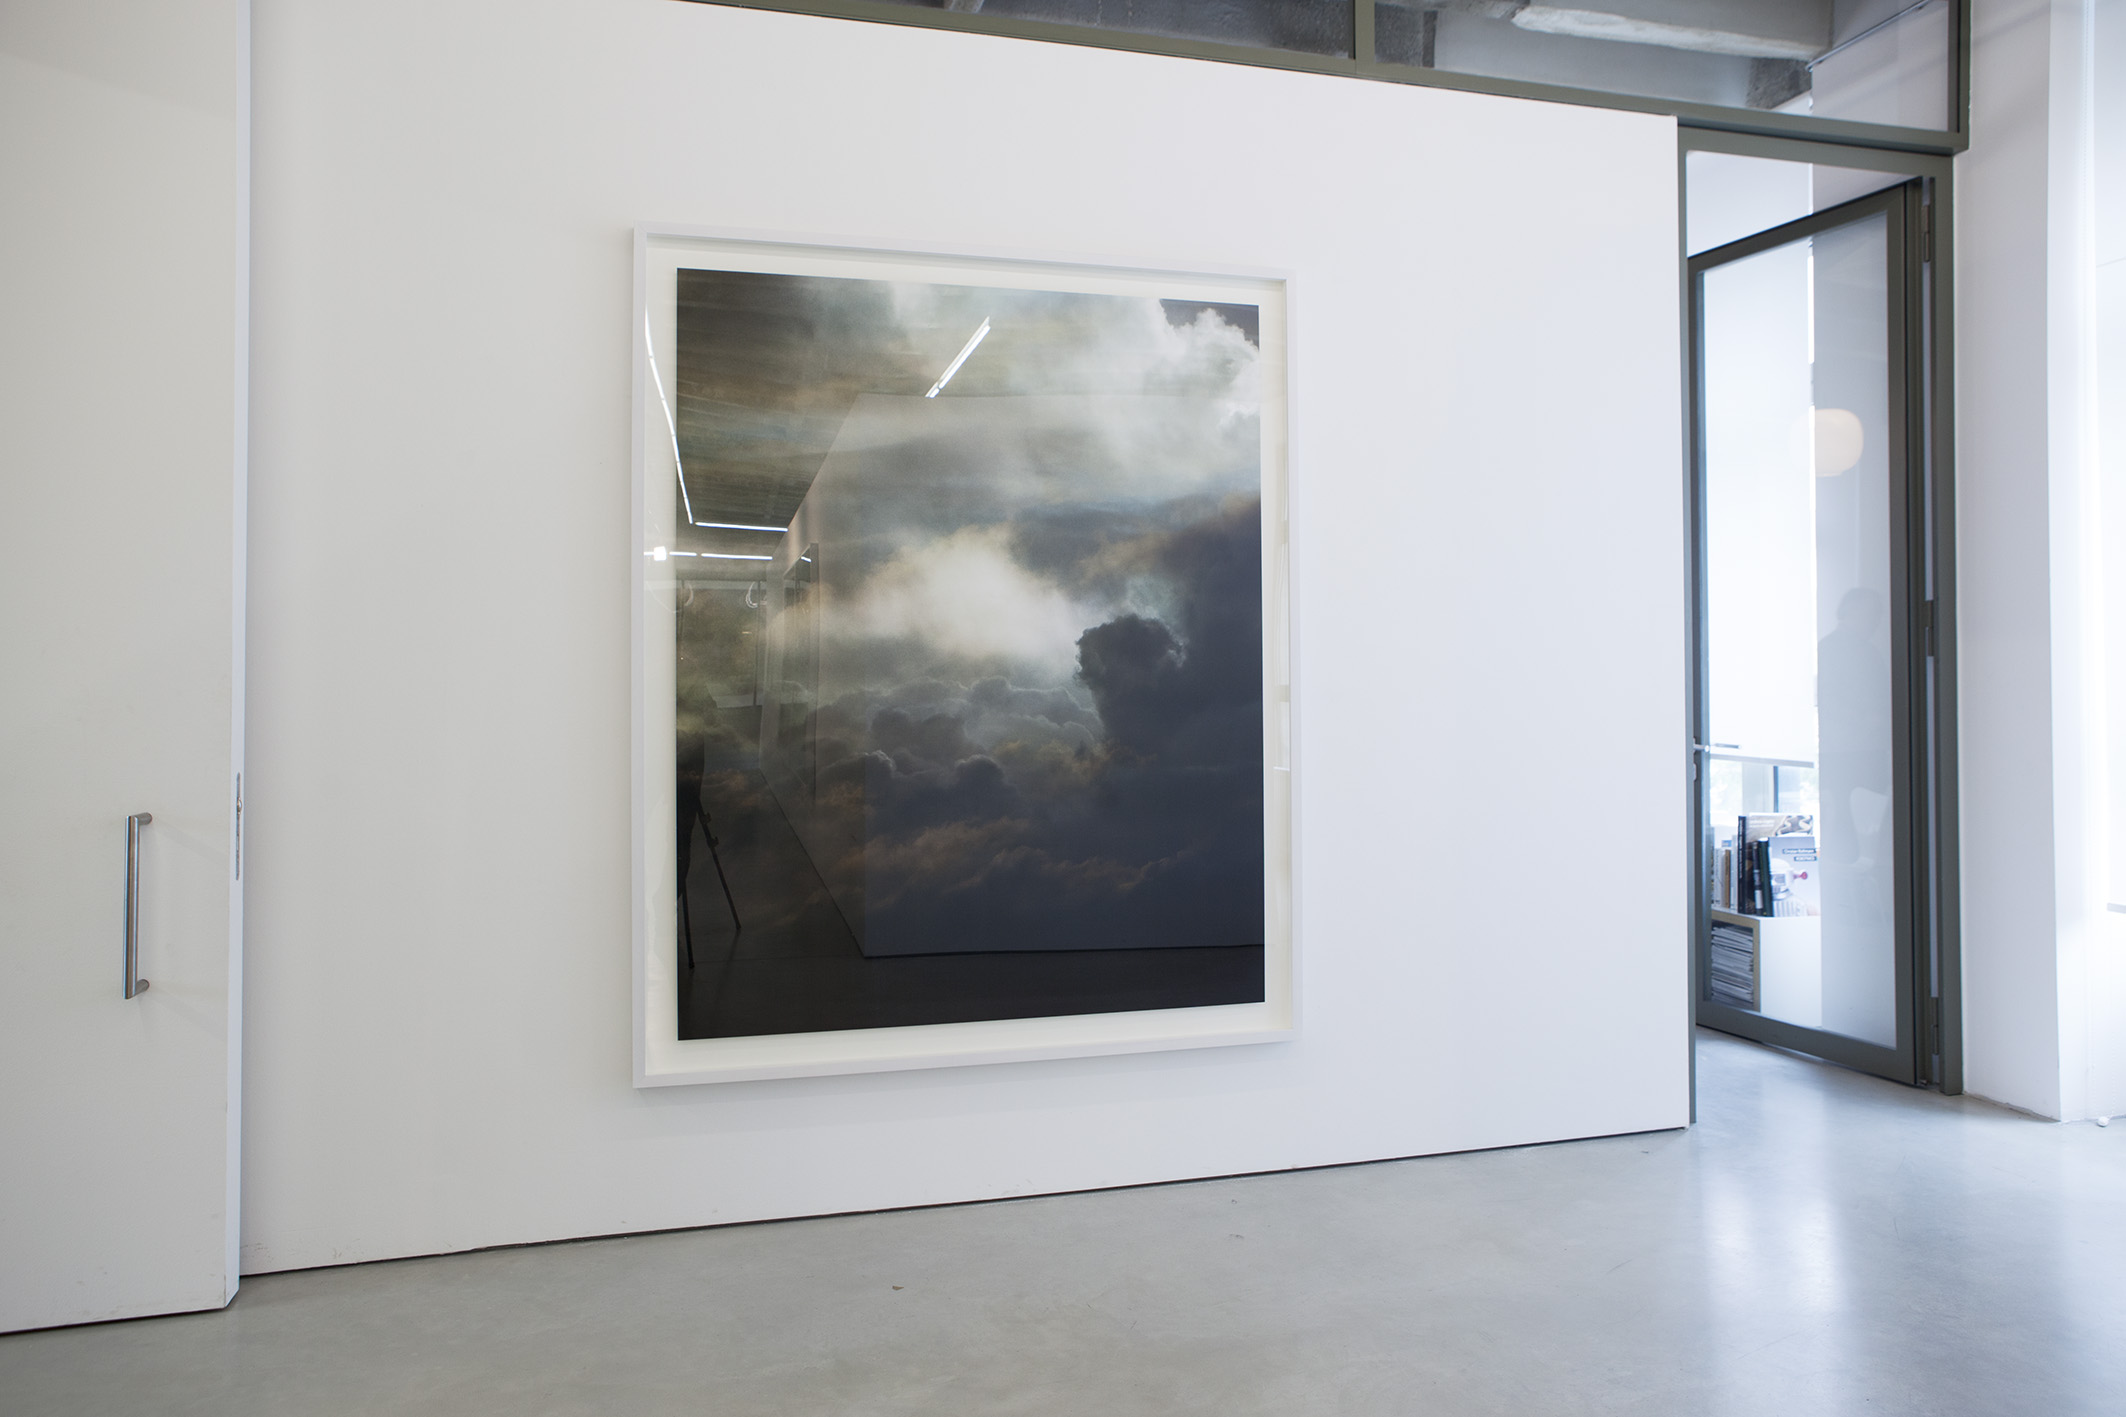 Installation view at Taik Persons, Berlin, 2014